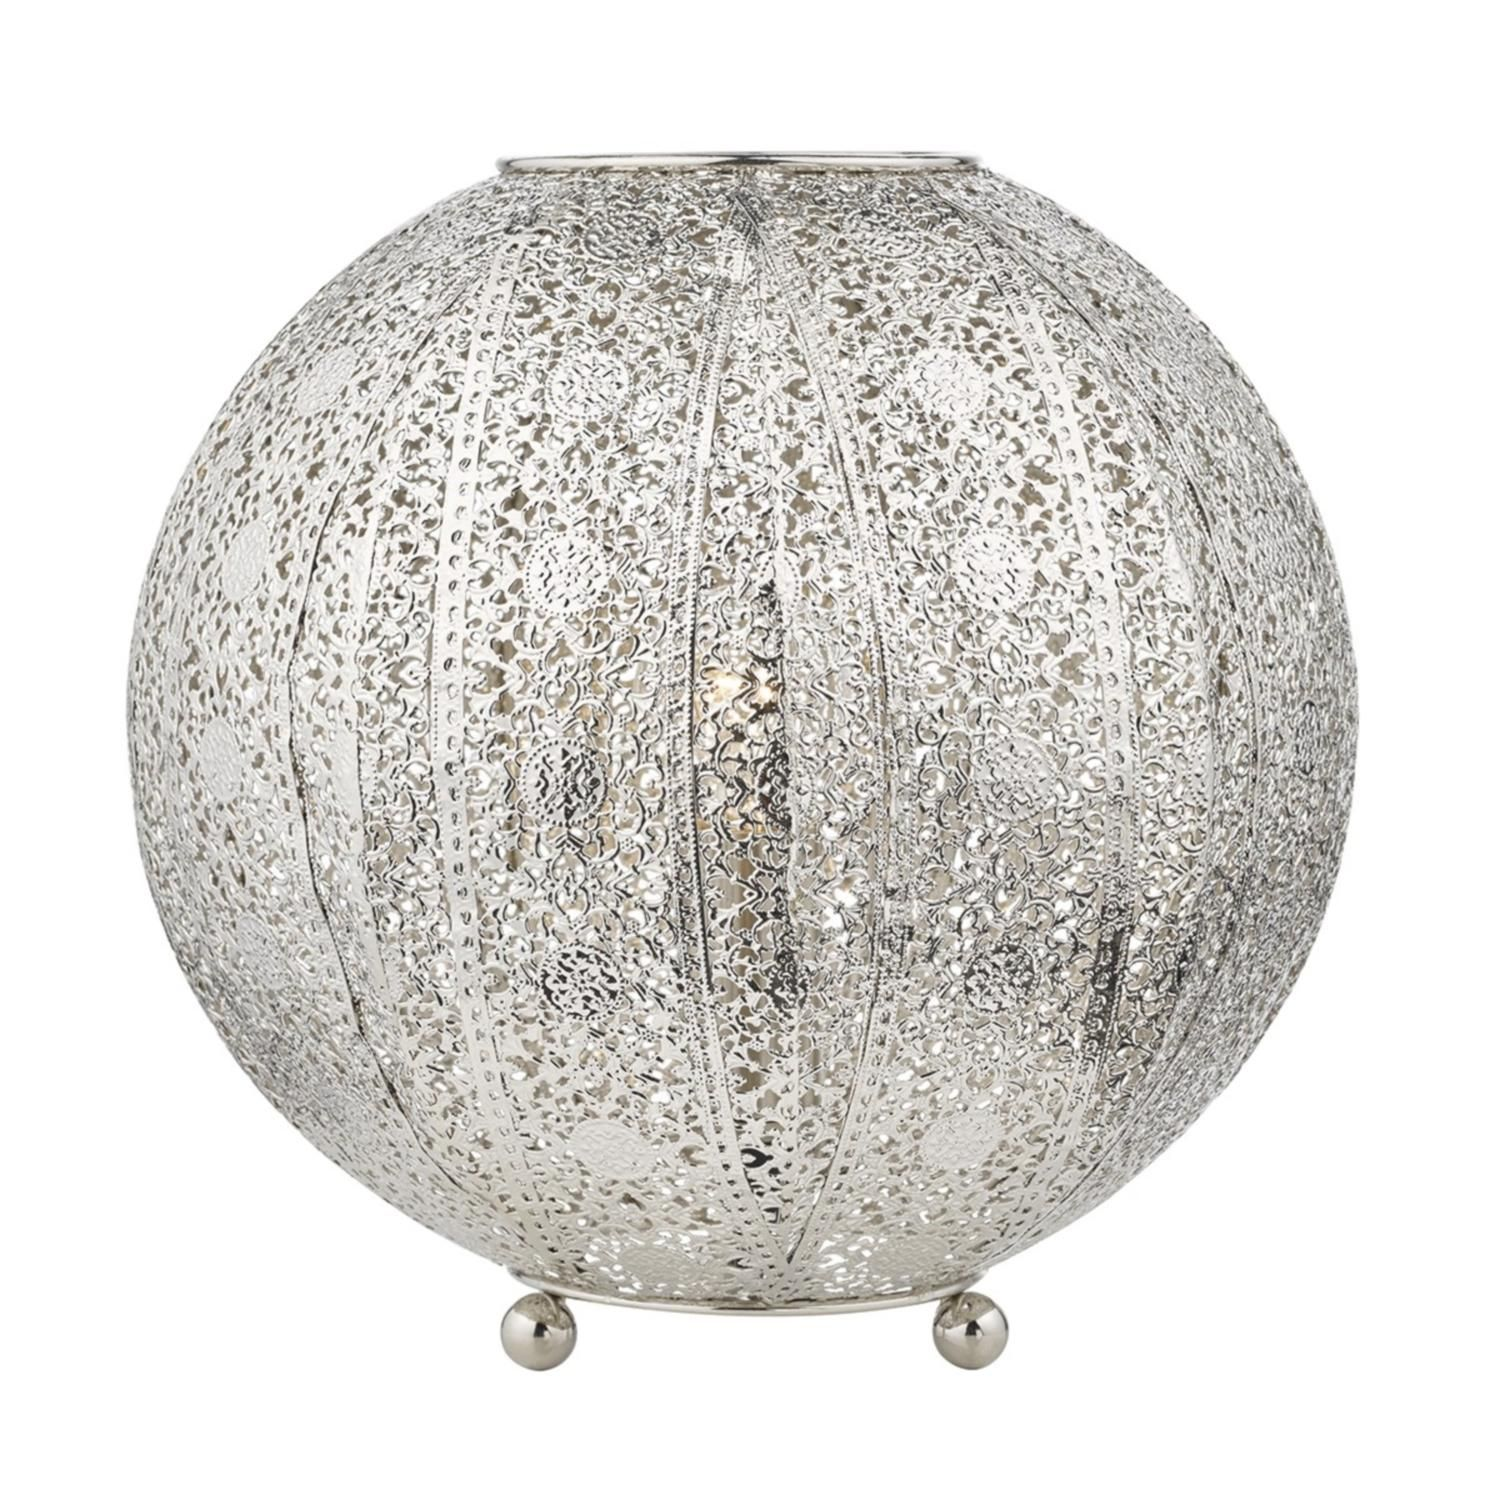 Baz4032 Antique Silver Filagree Globe Table Lamp The Lighting  # Meuble Design Zein Chloe